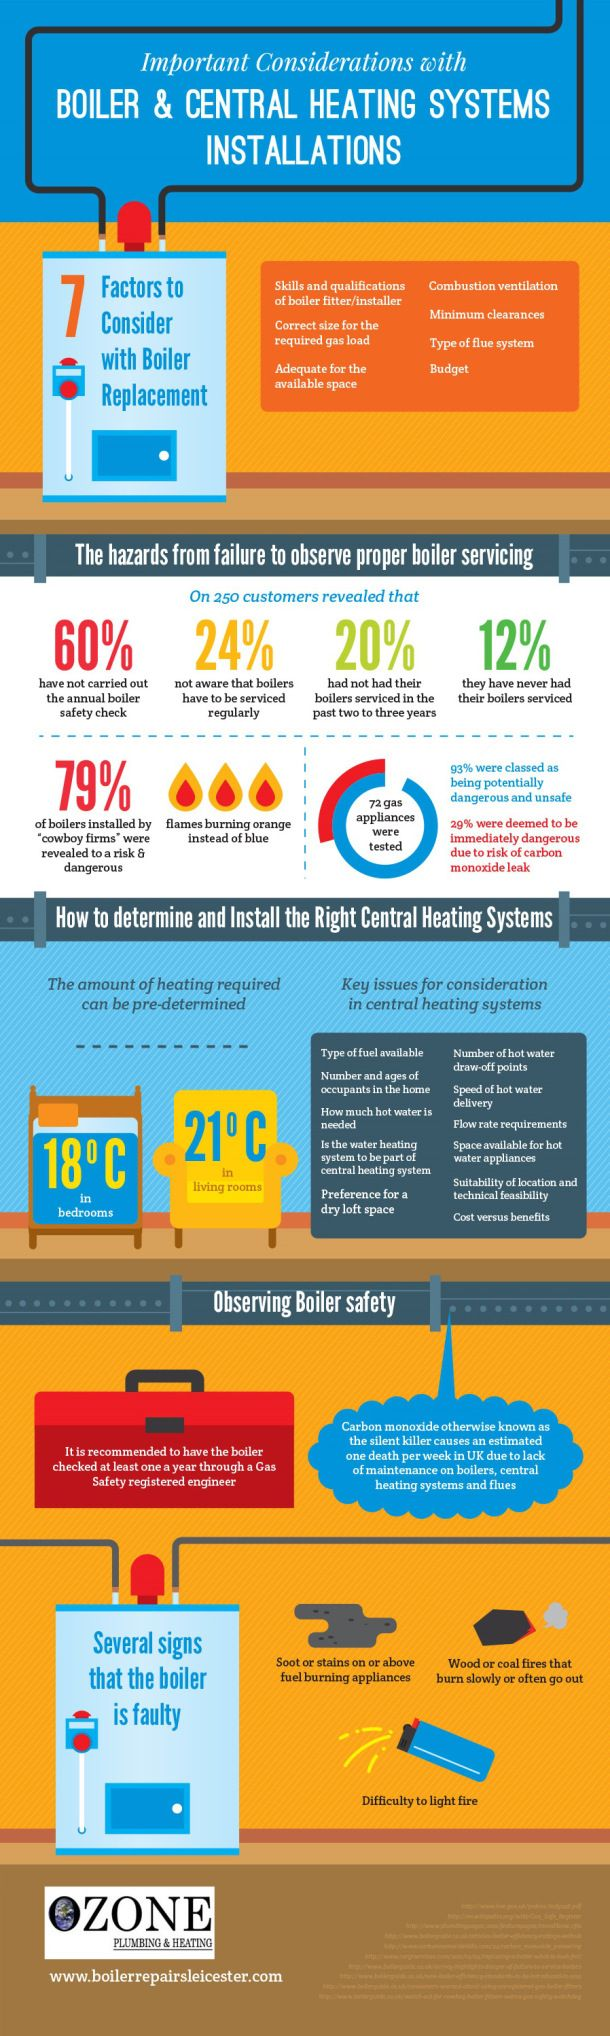 Important Considerations with Boiler & Central Heating Systems Installations[INFOGRAPHIC]